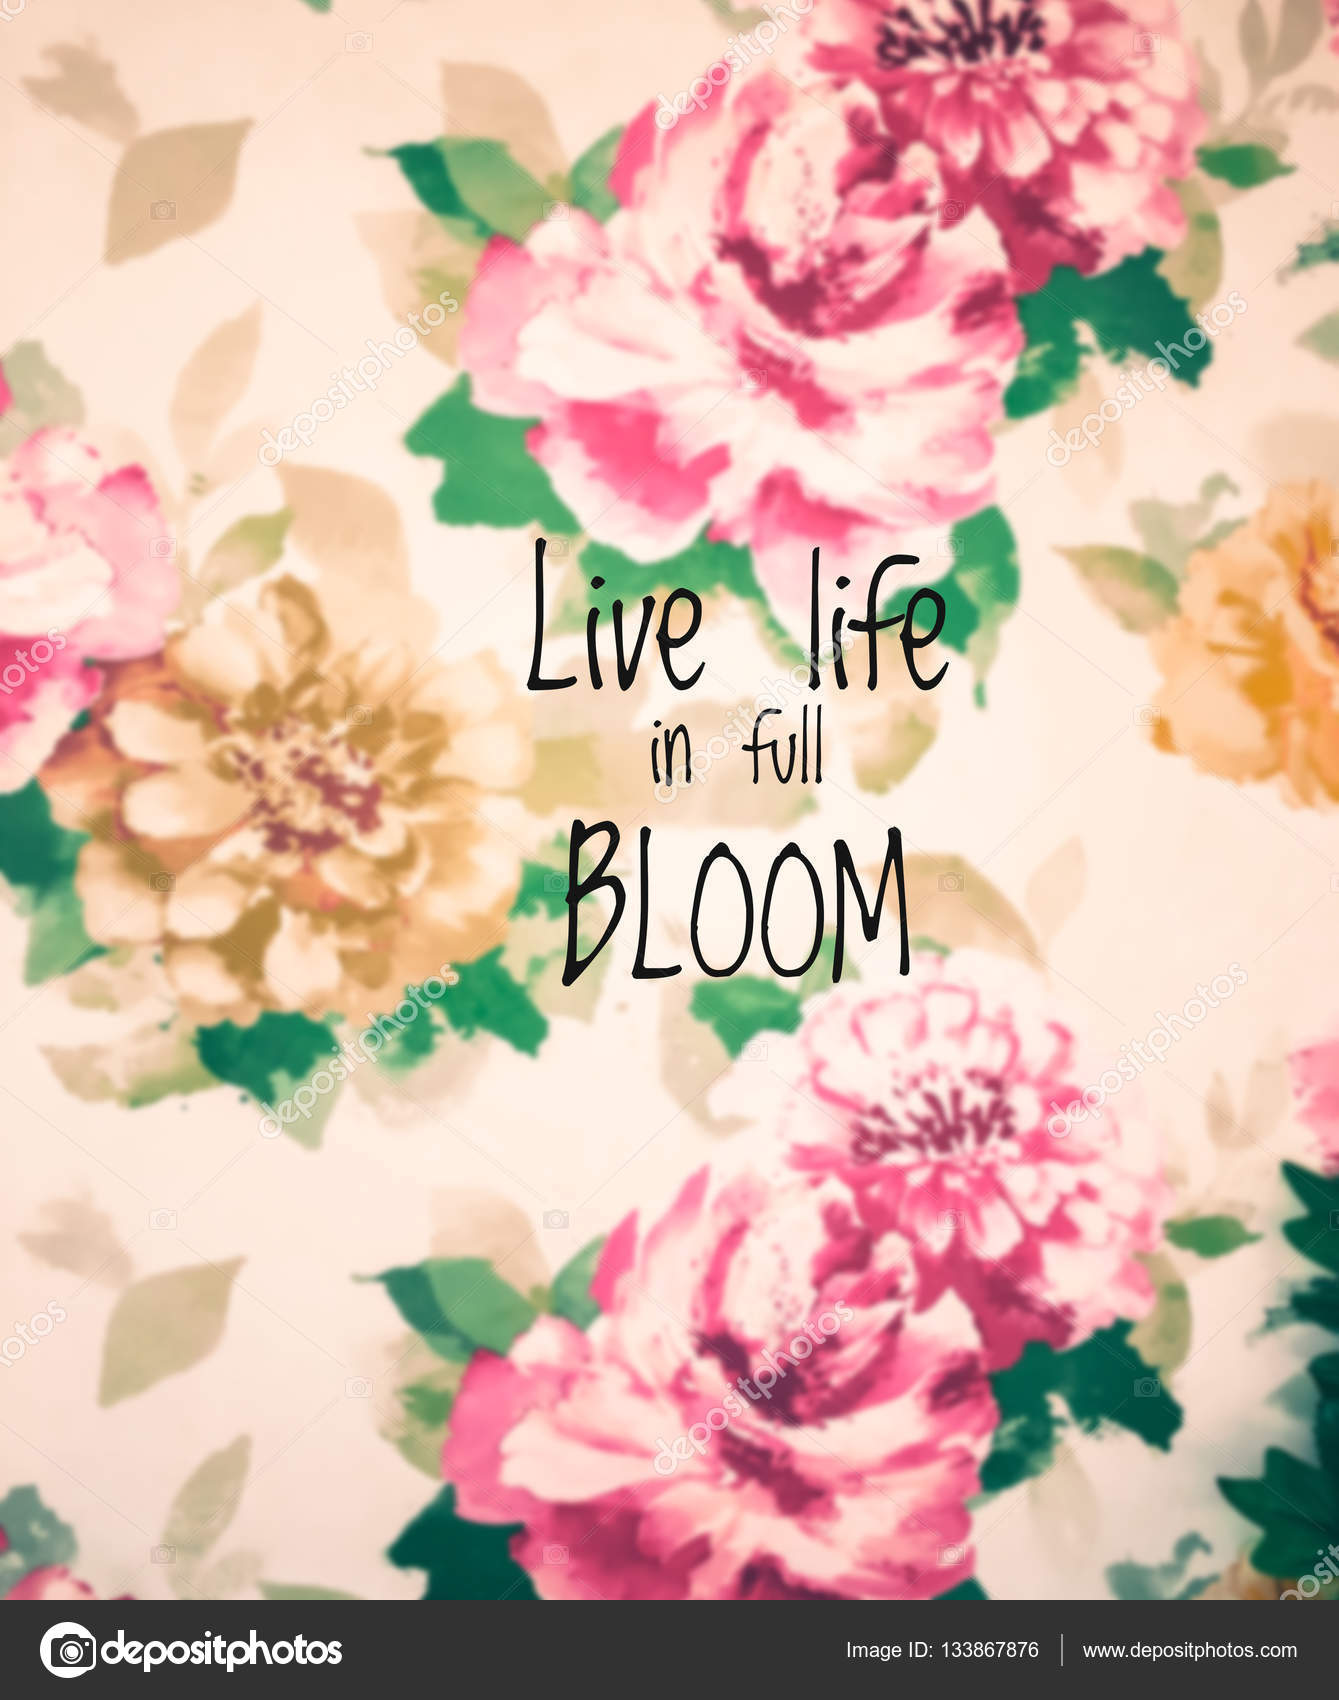 inspirational quote on blurred flowers background stock photo